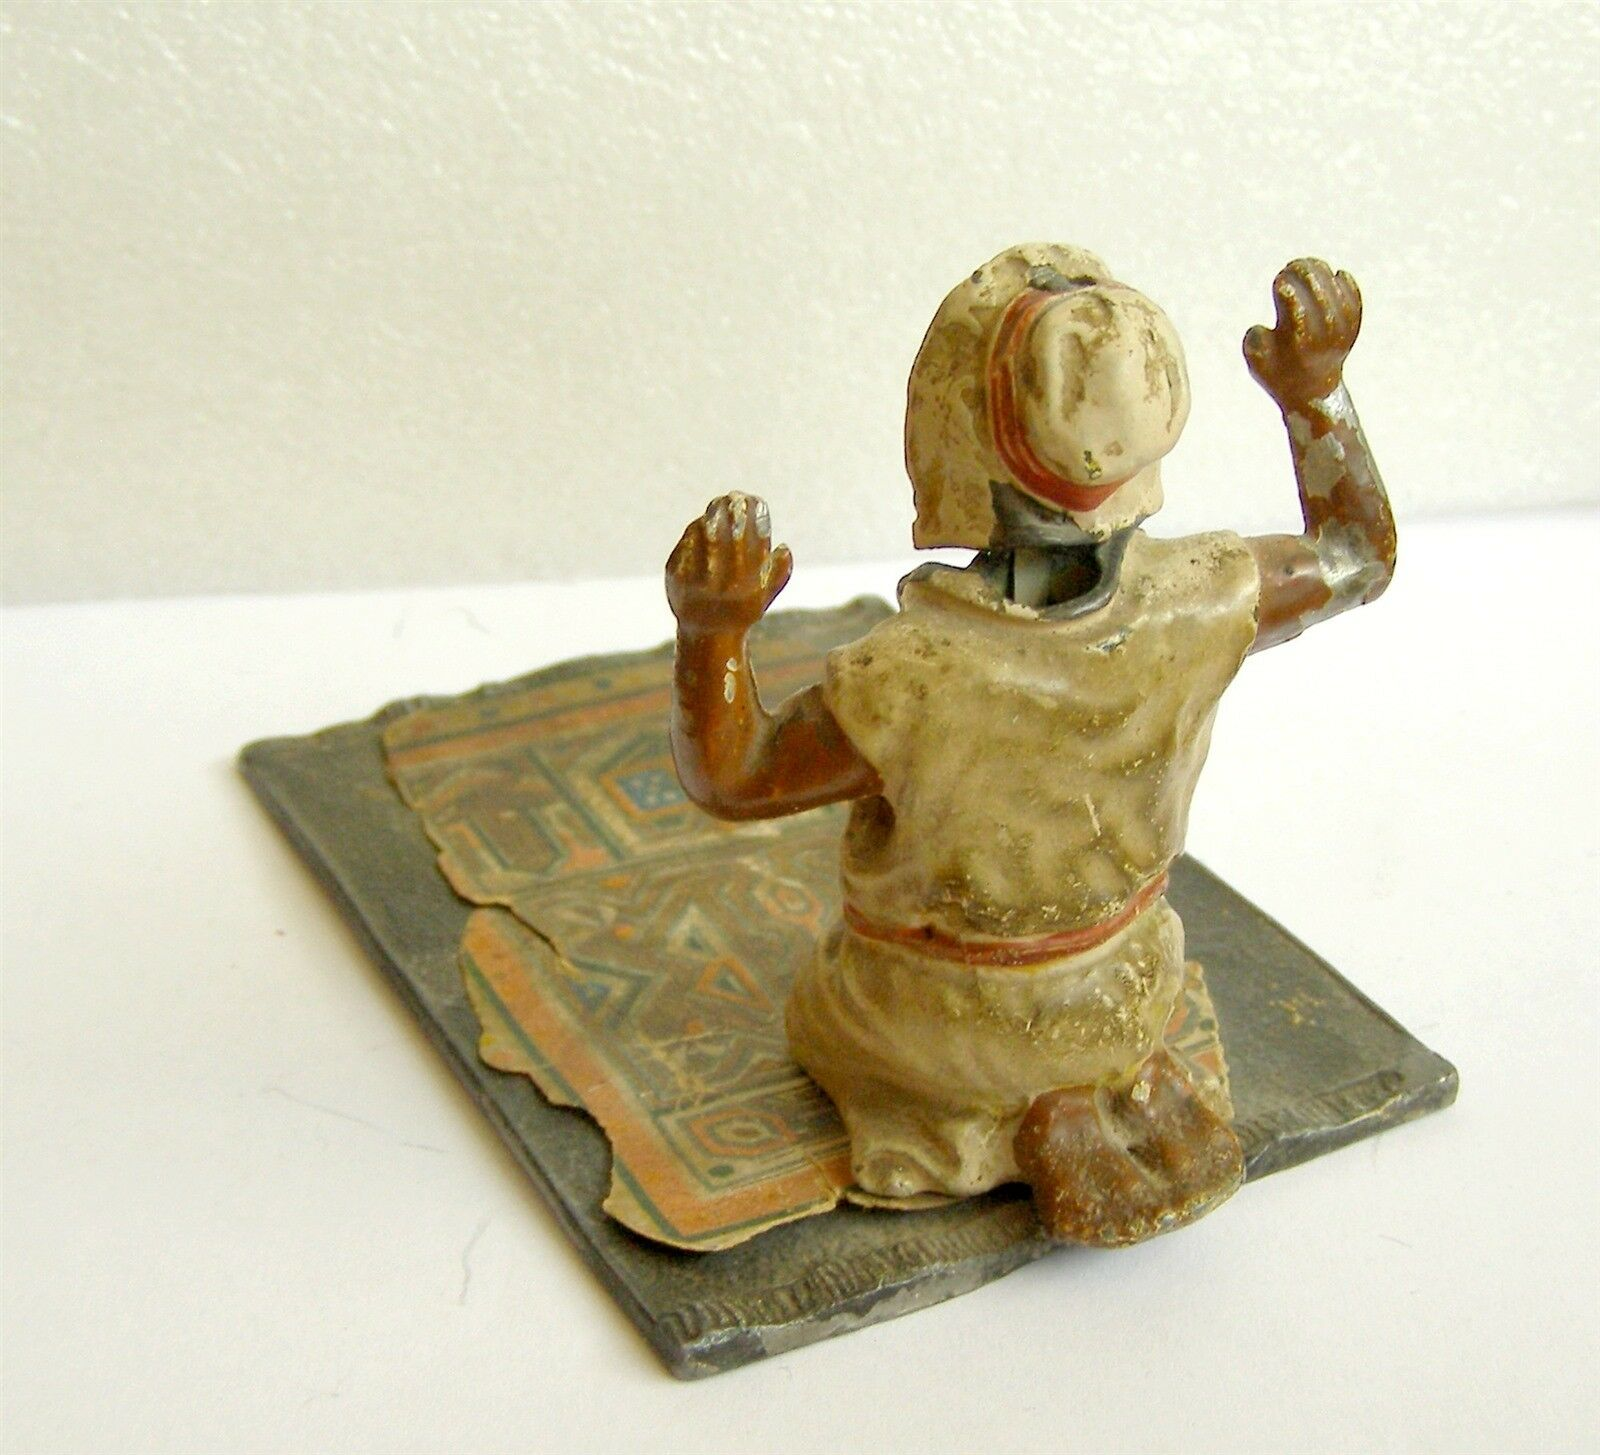 H930 H930 H930 Germany 1910 Cold Painted Orientalist lead toy by Georg Heyde Bergman style 733b68